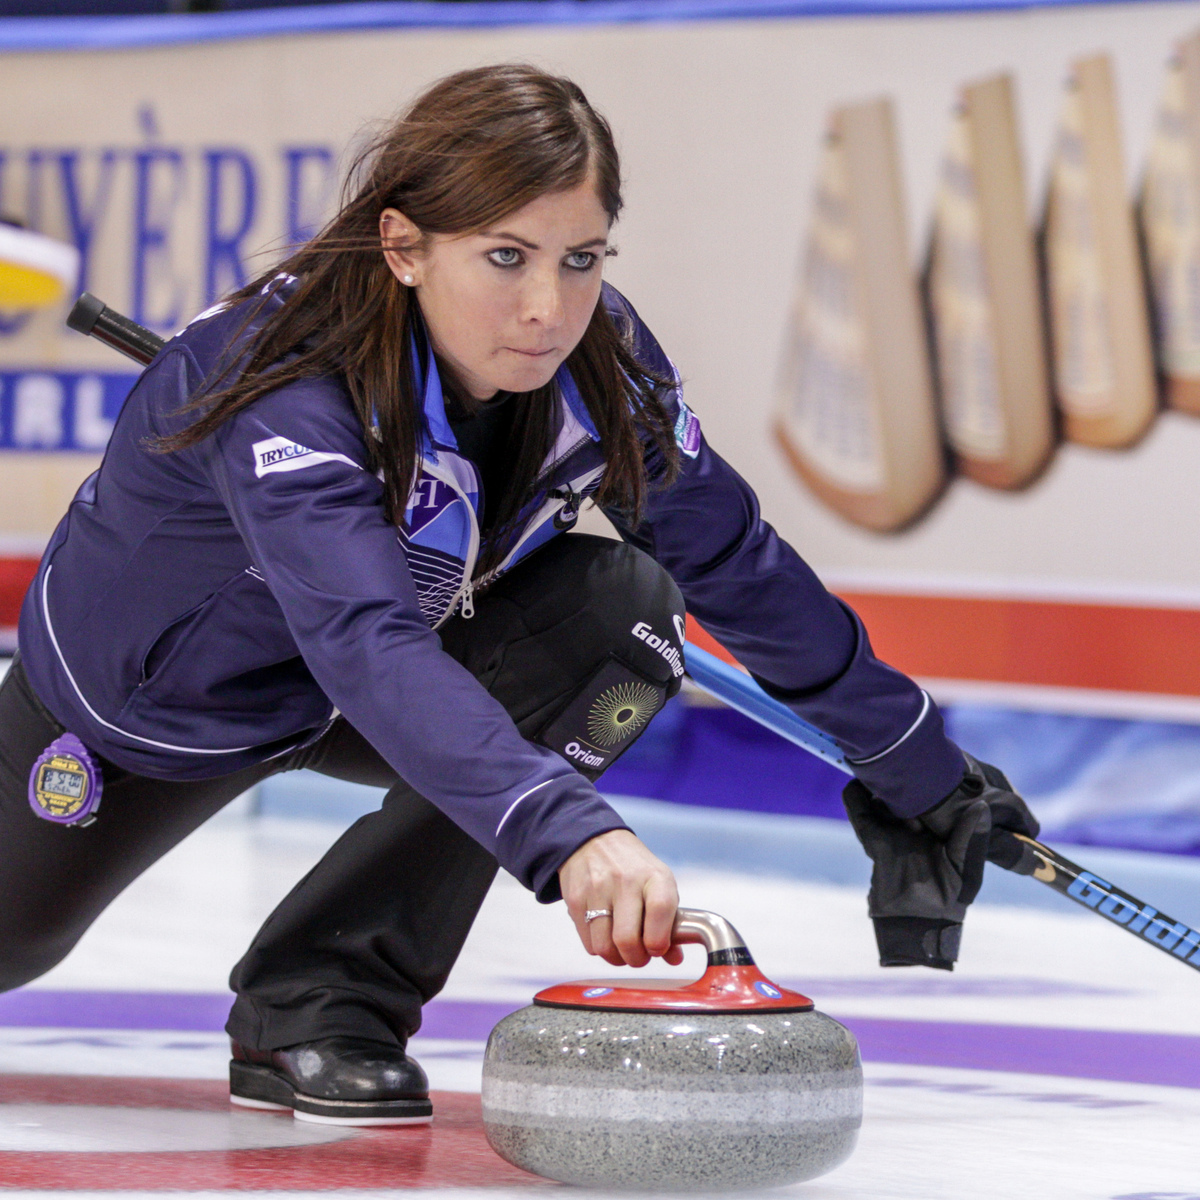 Eve Muirhead in action at the European Championships where she and her team have been in dominant form (IIpic courtesy of WCF/Jeffrey Au)